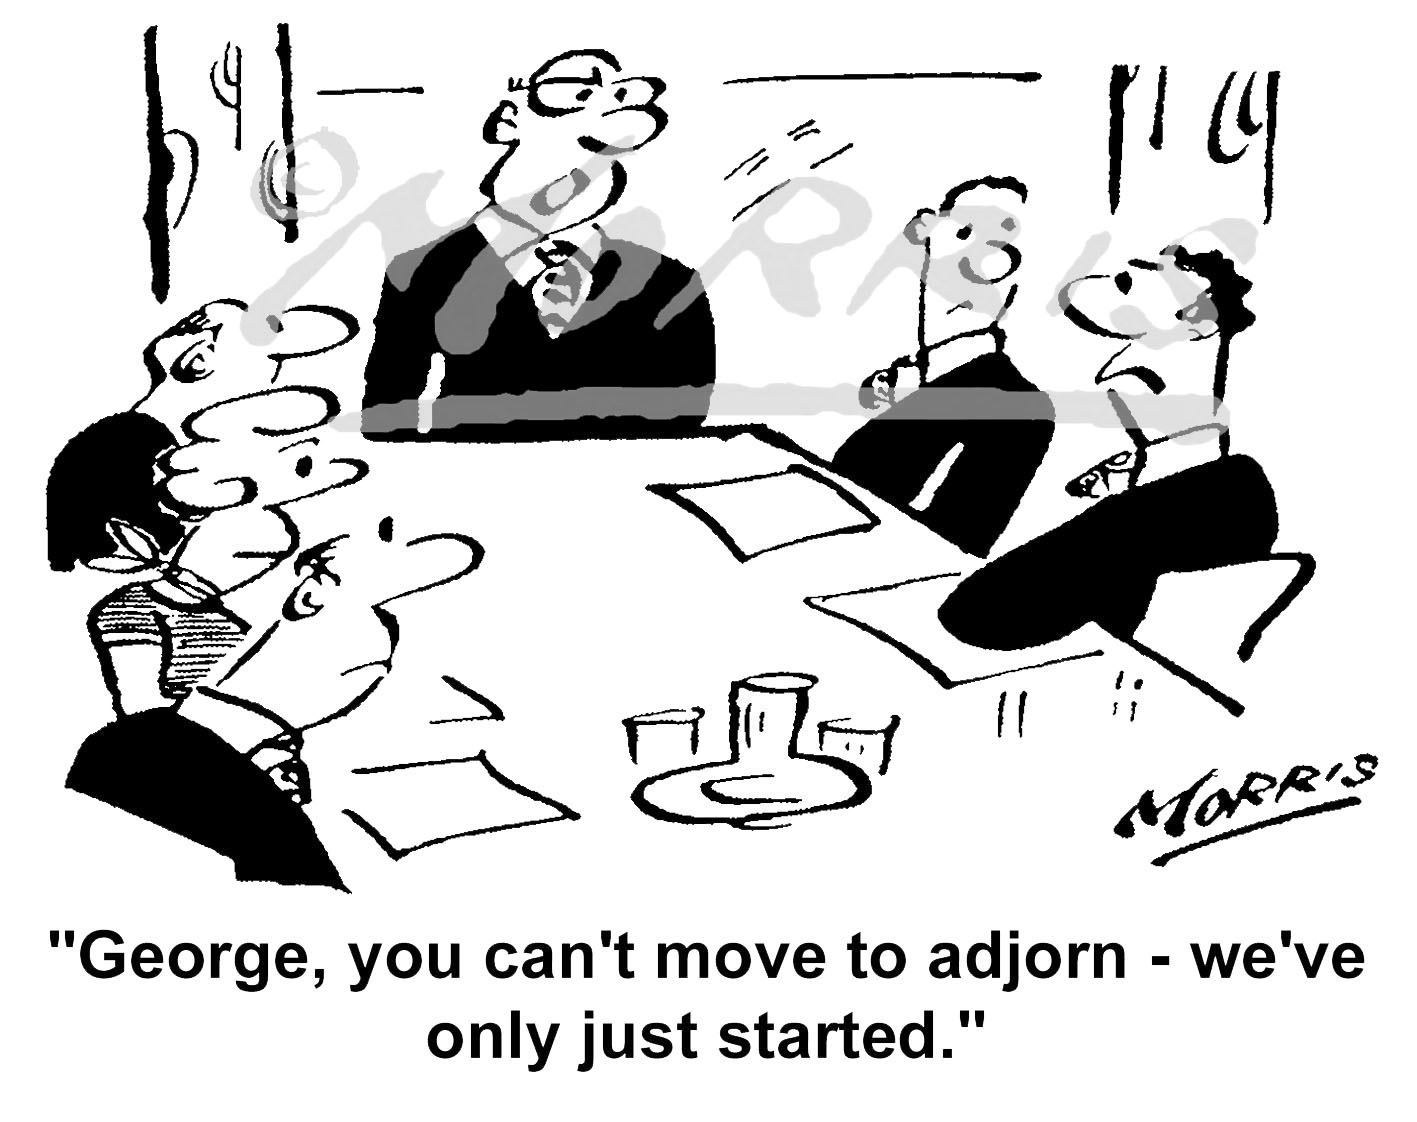 Boardroom meeting cartoon, Chairman cartoon, CEO cartoon & Managing Director cartoon – Ref: 5538bw